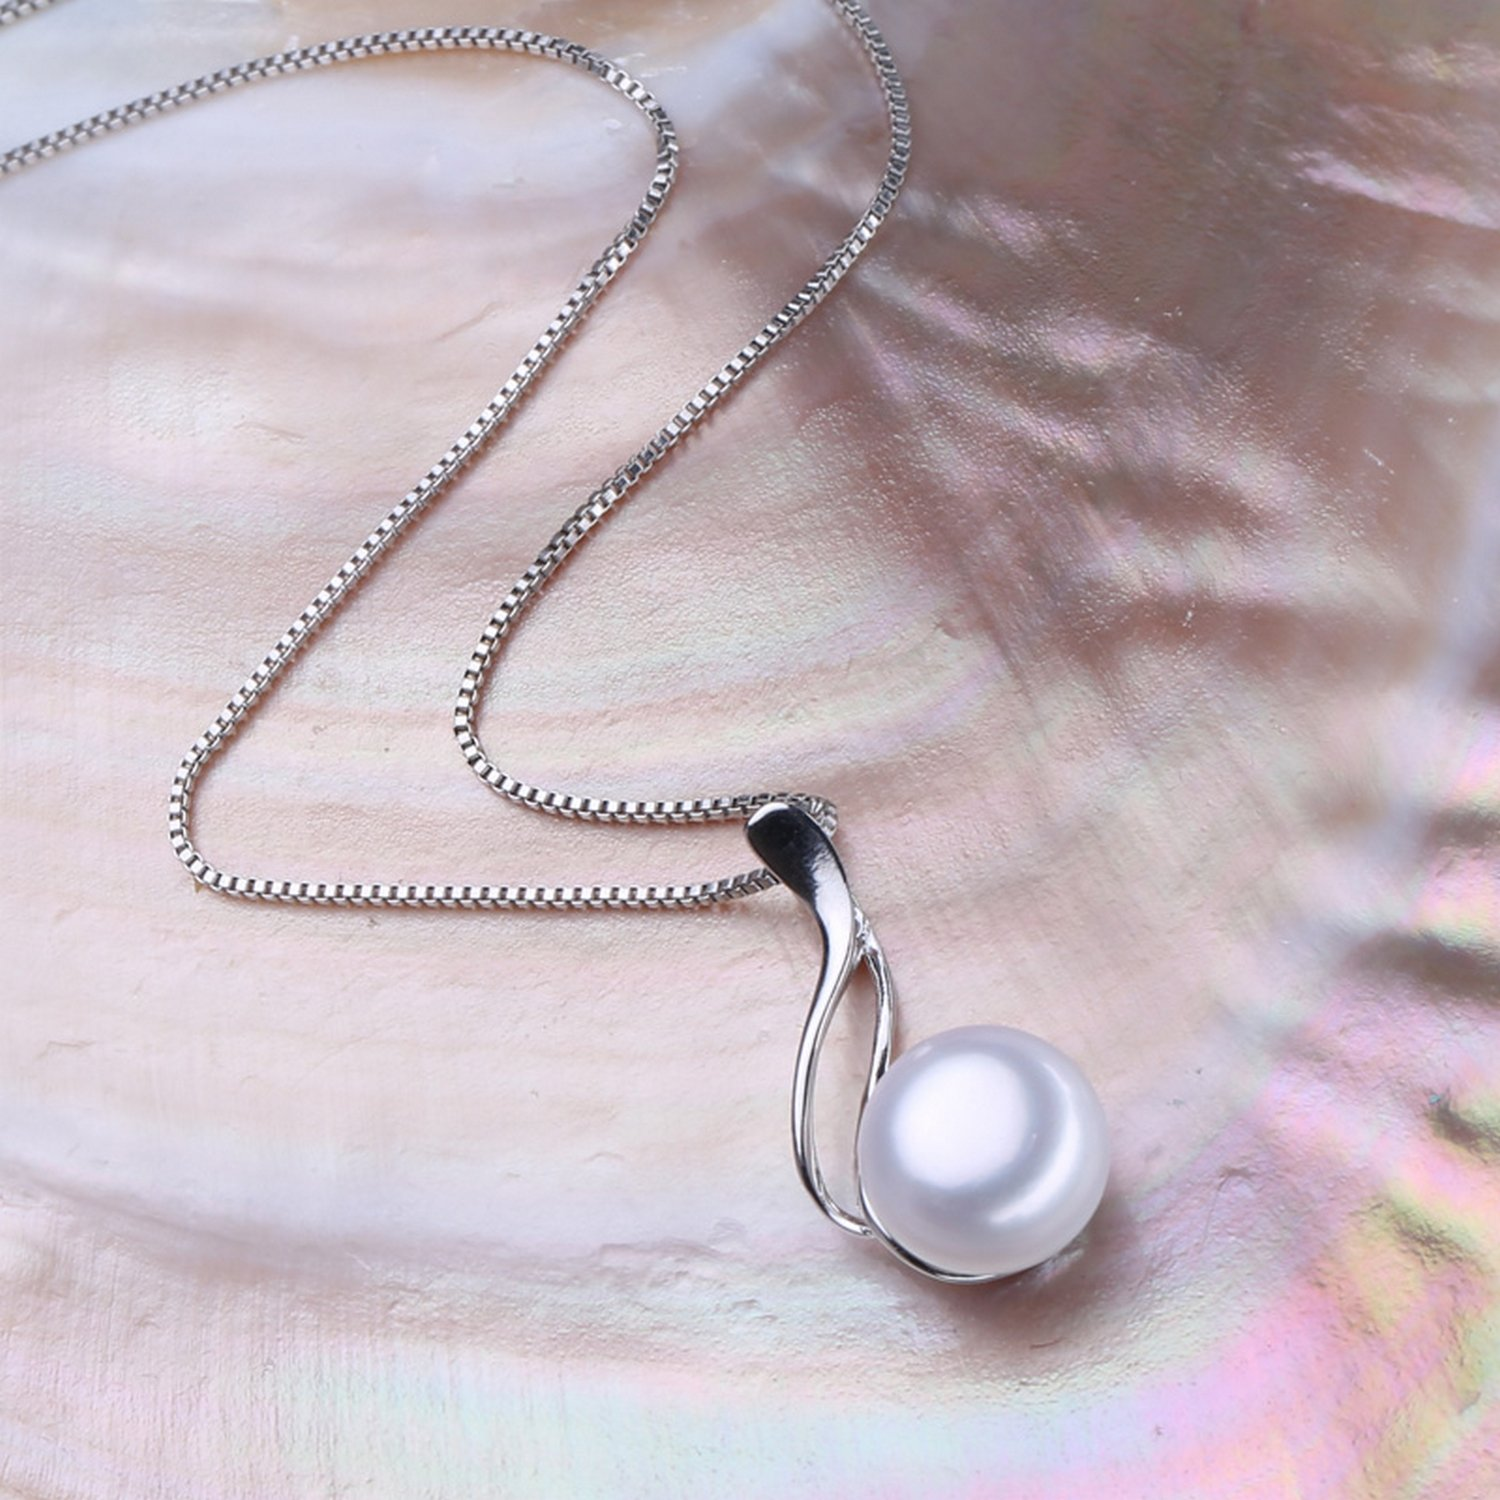 CS-DB Jewelry Silver Big Pearl Trendy Chain Charm Pendants Necklaces